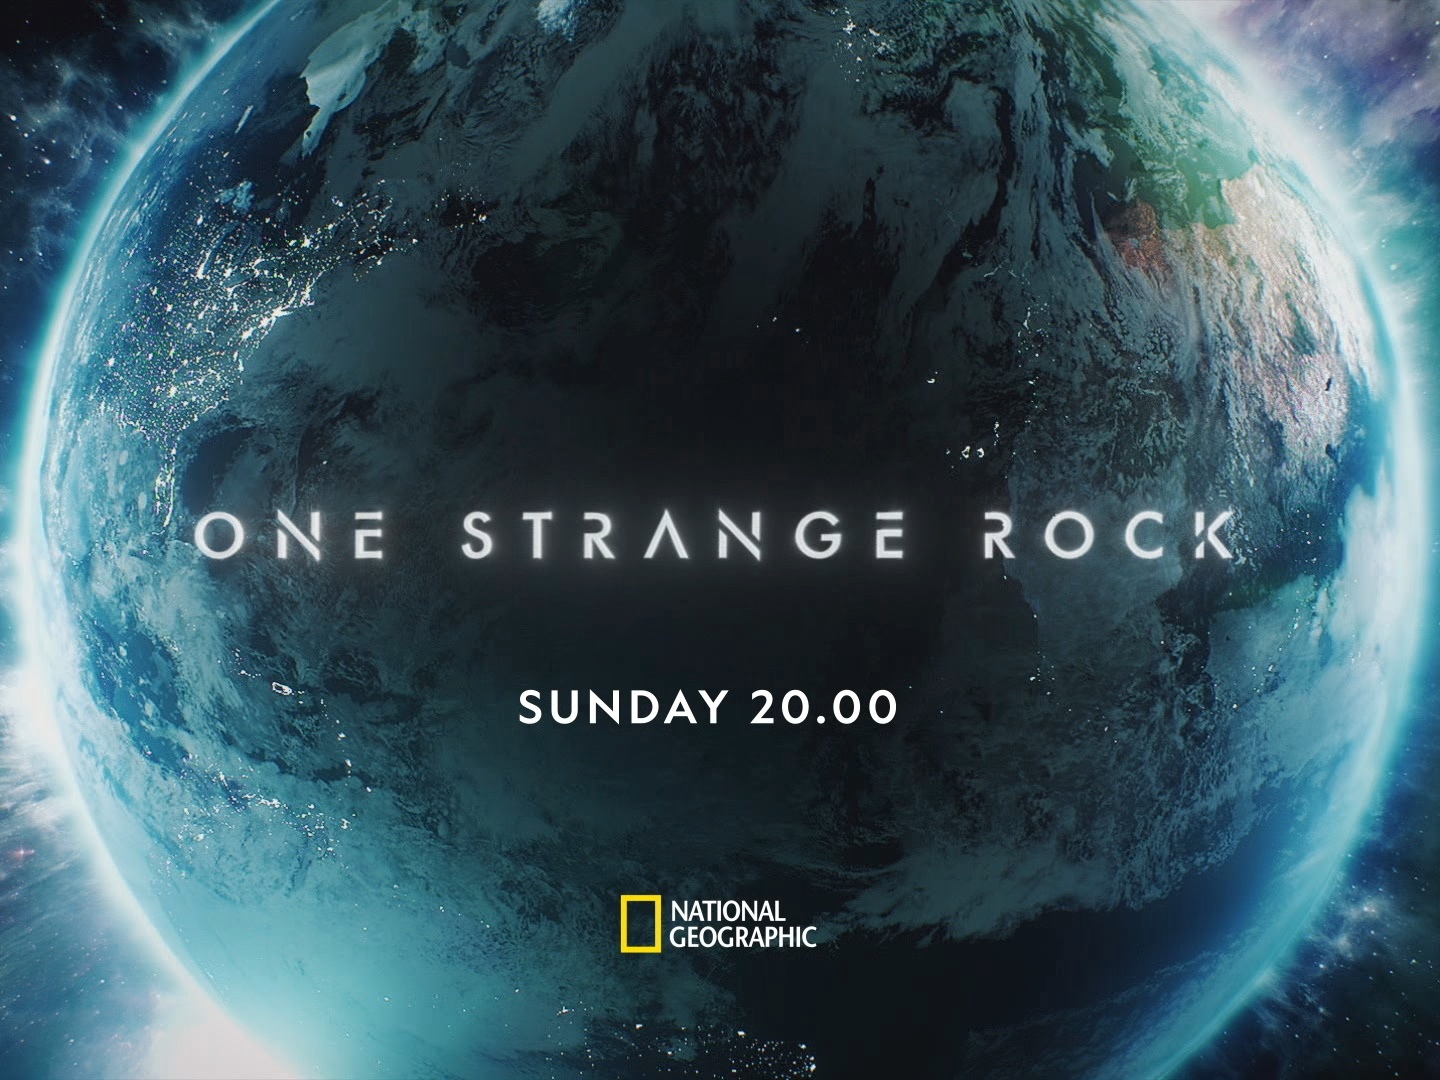 ONE STRANGE ROCK BEETHOVEN PROMO Thumbnail